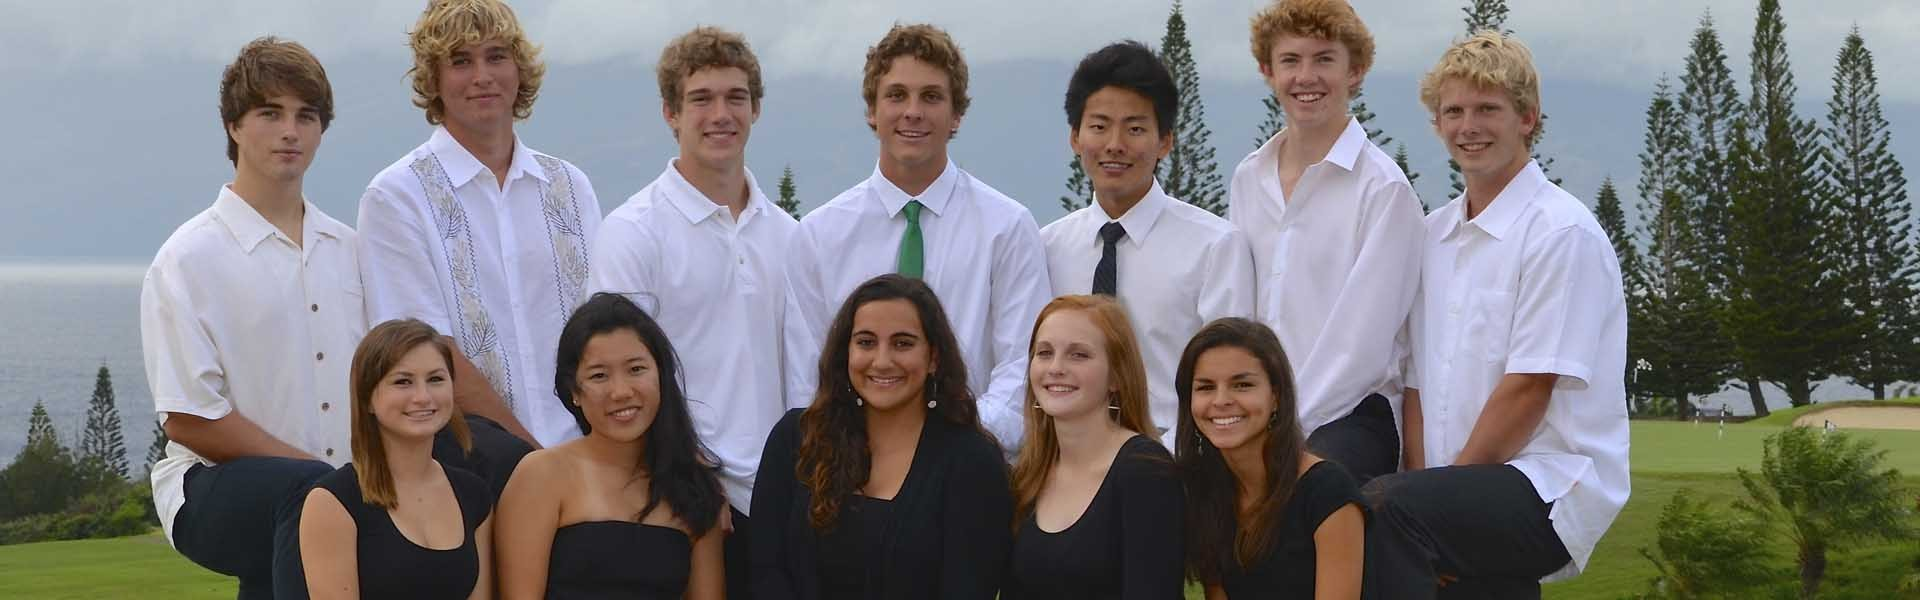 MAuiPreparatoryAcademy-Highschool-Hawaii-Students-MAin-BAnner-2019